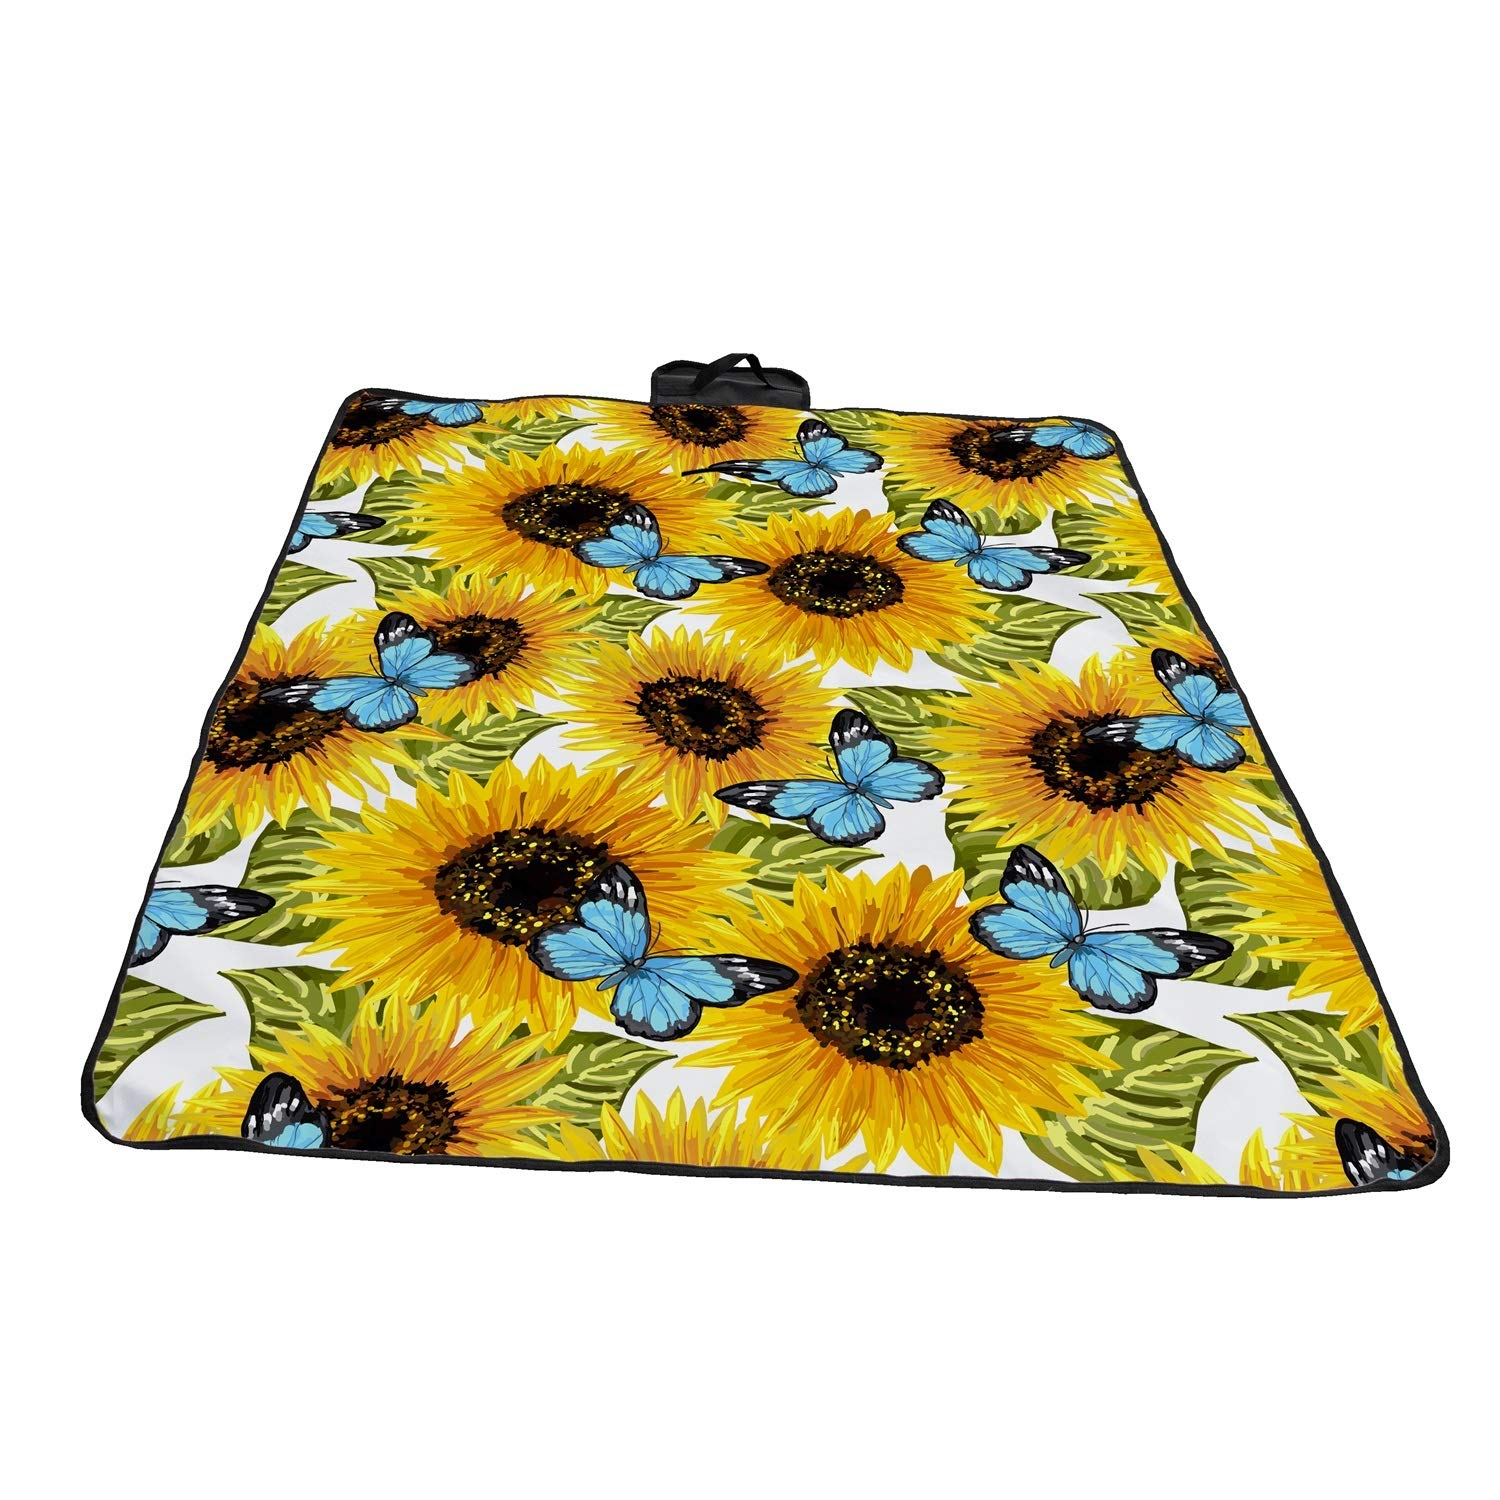 A&S Creavention Waterproof Outdoor Picnic Beach Blanket Mat Lightweight Portable Handcarry Tote Easy to fold 72'' x 58'' (Sun Flower) by A&S Creavention